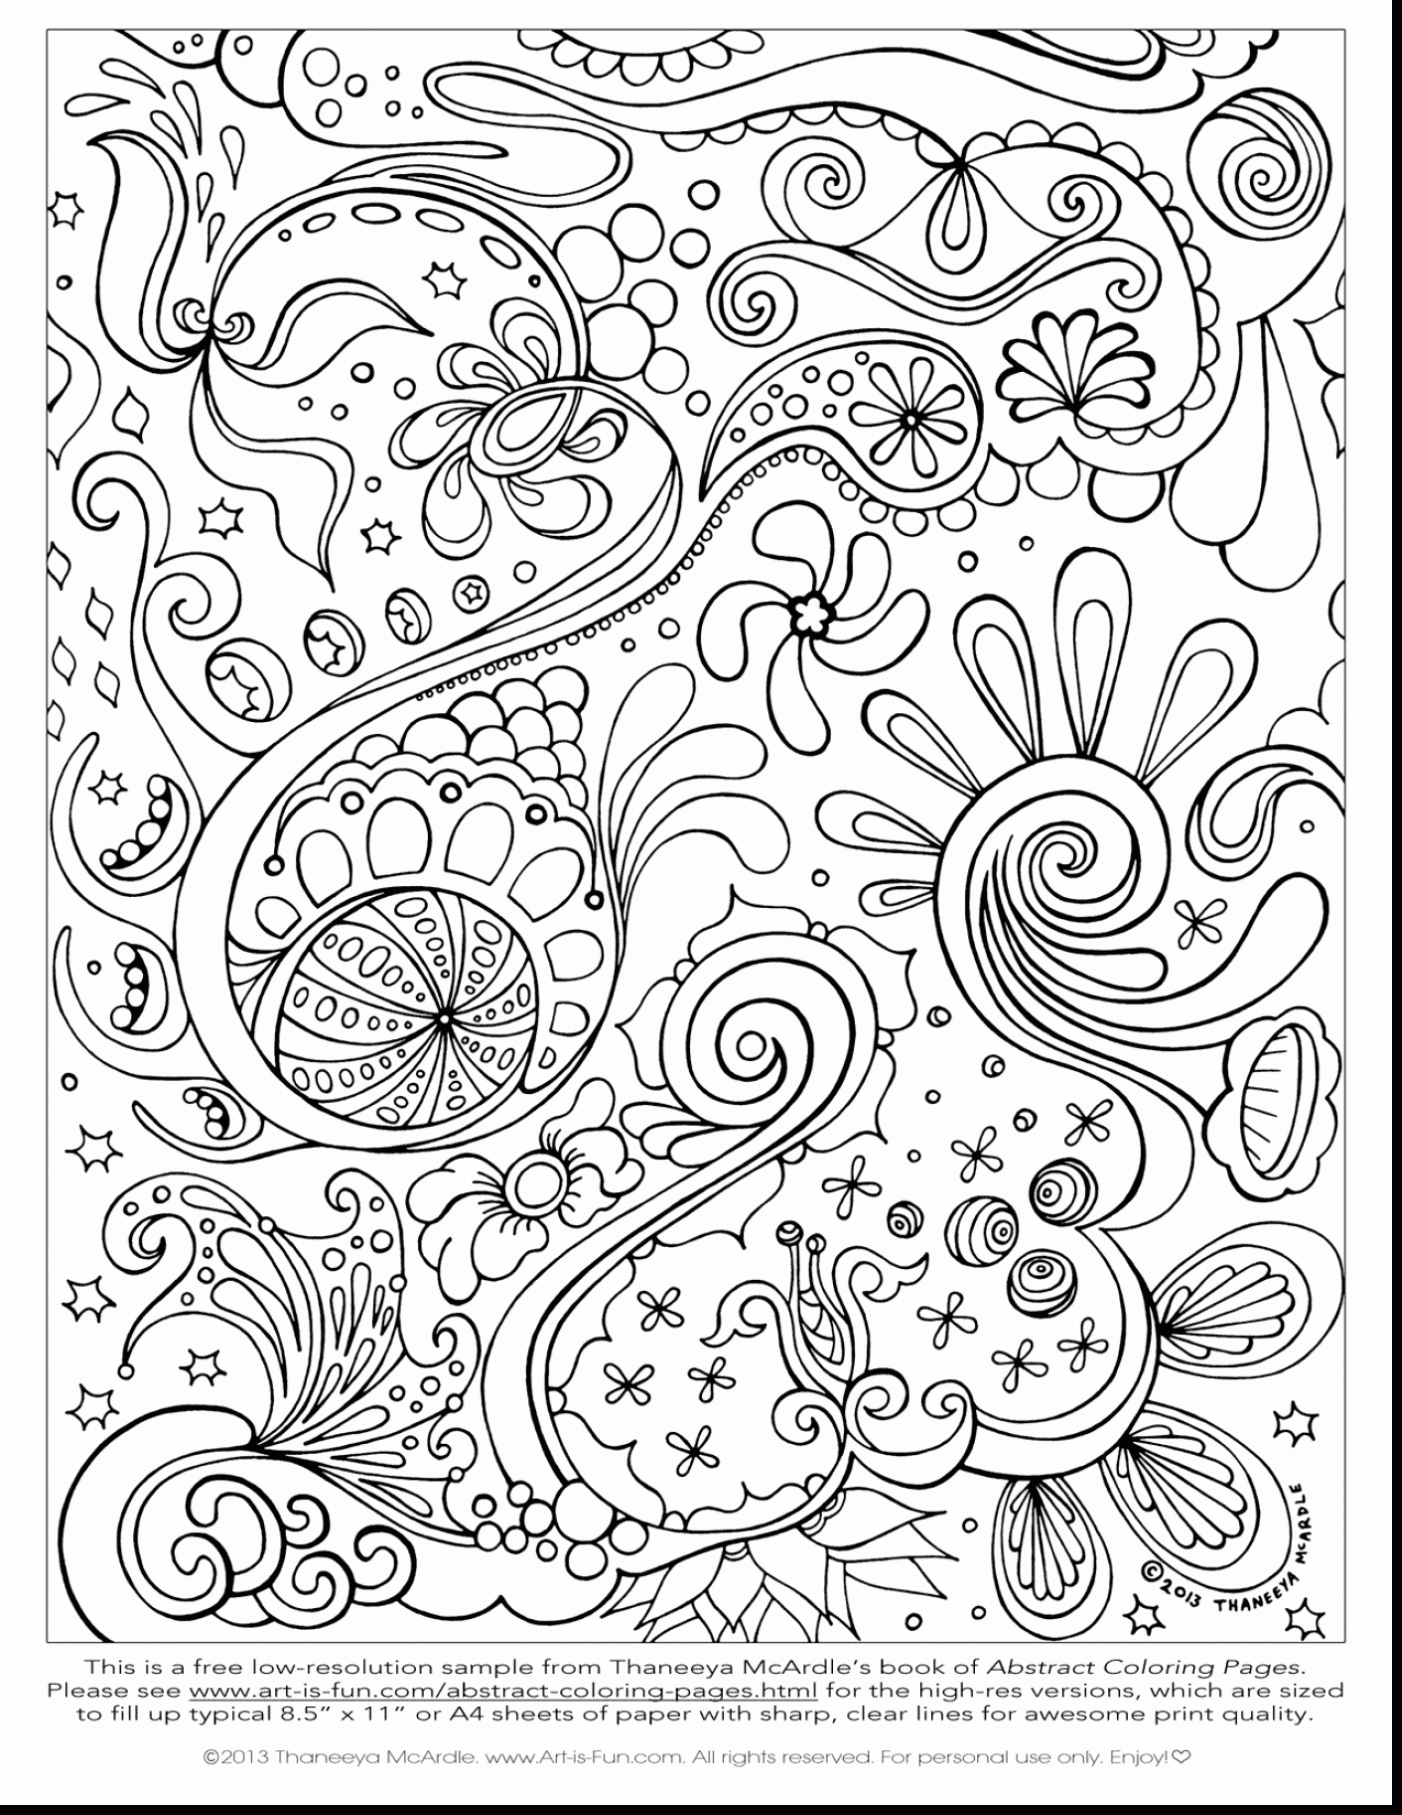 Coloring Pages : Epic Free Printable Mandala Coloring Pages For - Free Printable Mandala Coloring Pages For Adults